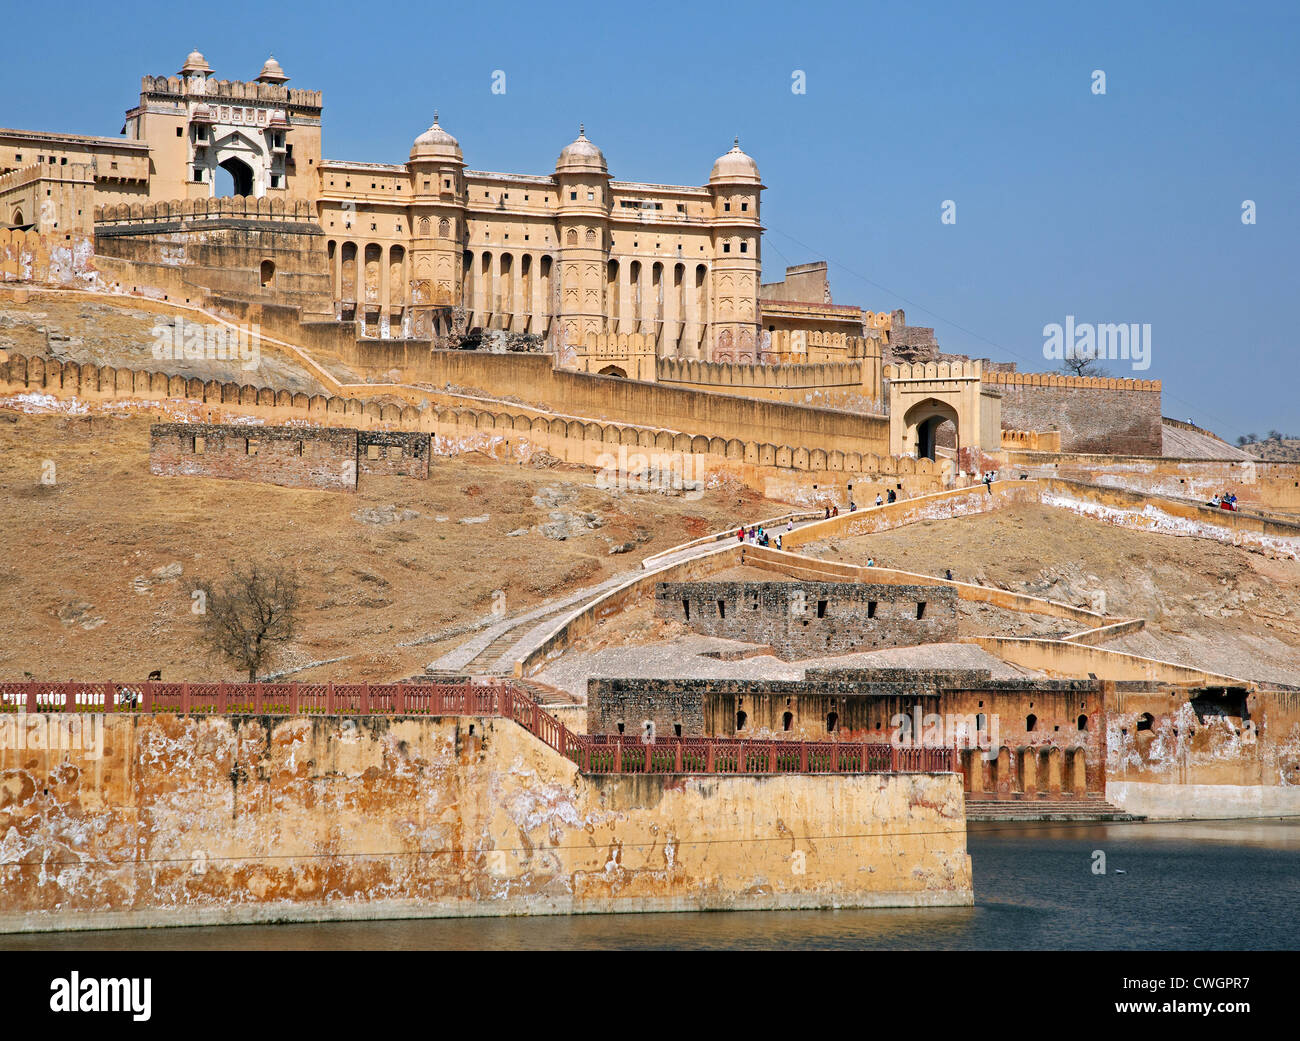 Forte Amer / Ambra Fort, palazzo in pietra arenaria rossa a Amer vicino a Jaipur, Rajasthan, India Immagini Stock